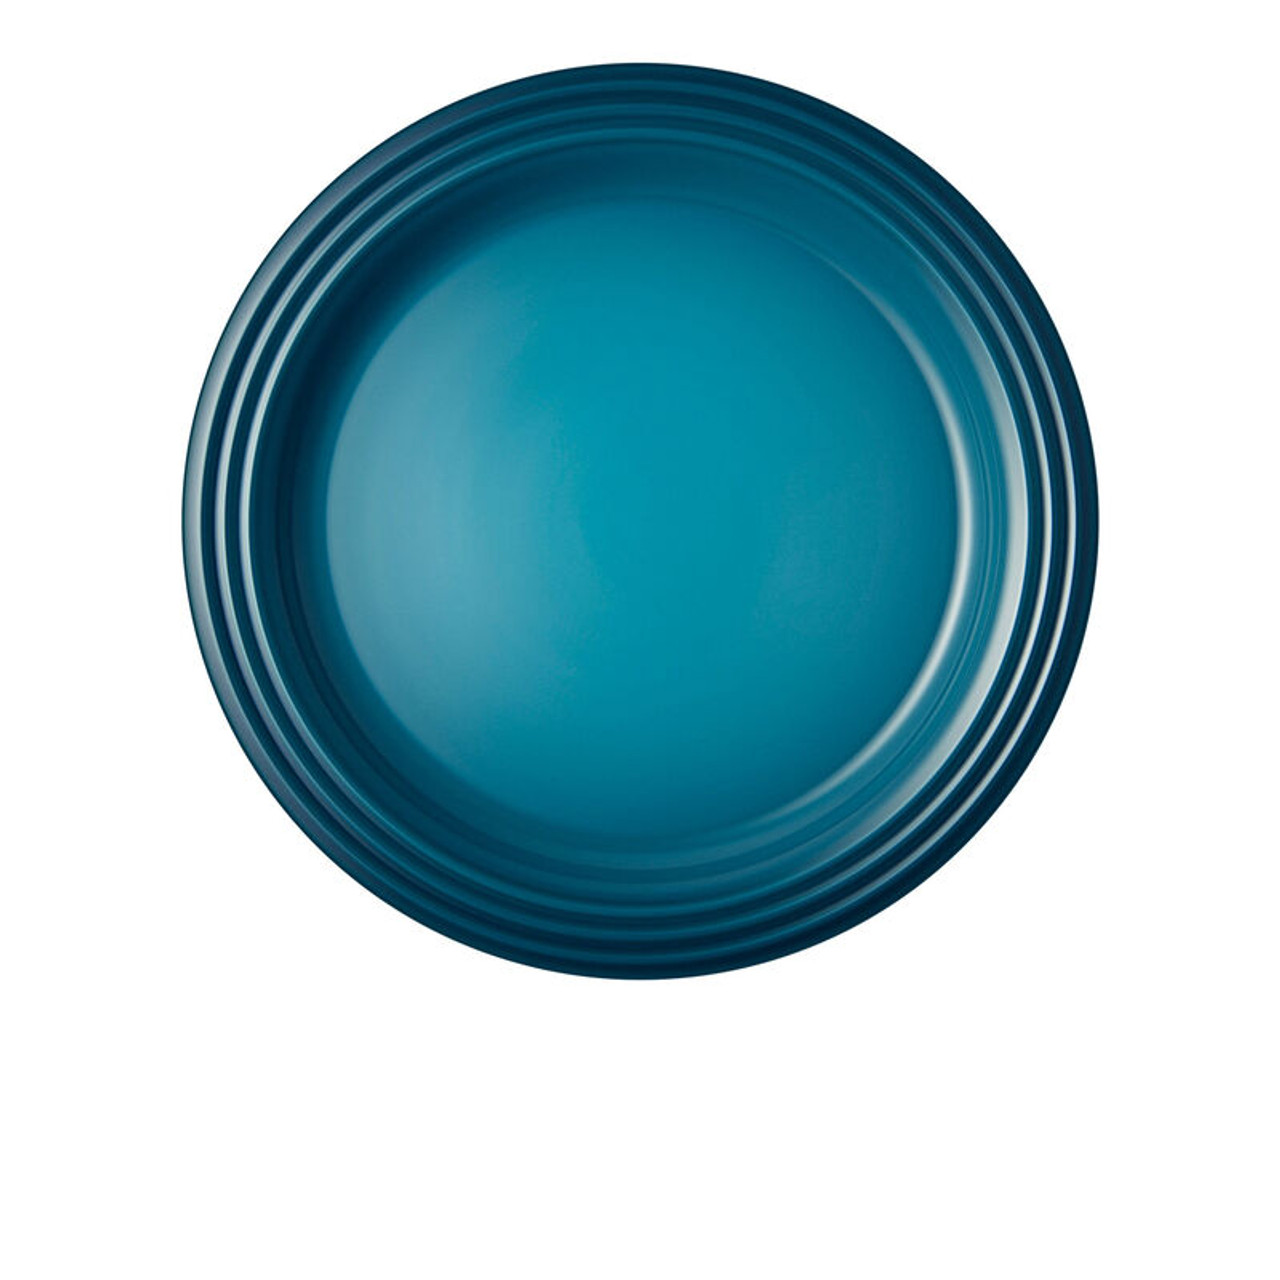 LE CREUSET CLASSIC DINNER PLATE - SET OF 4